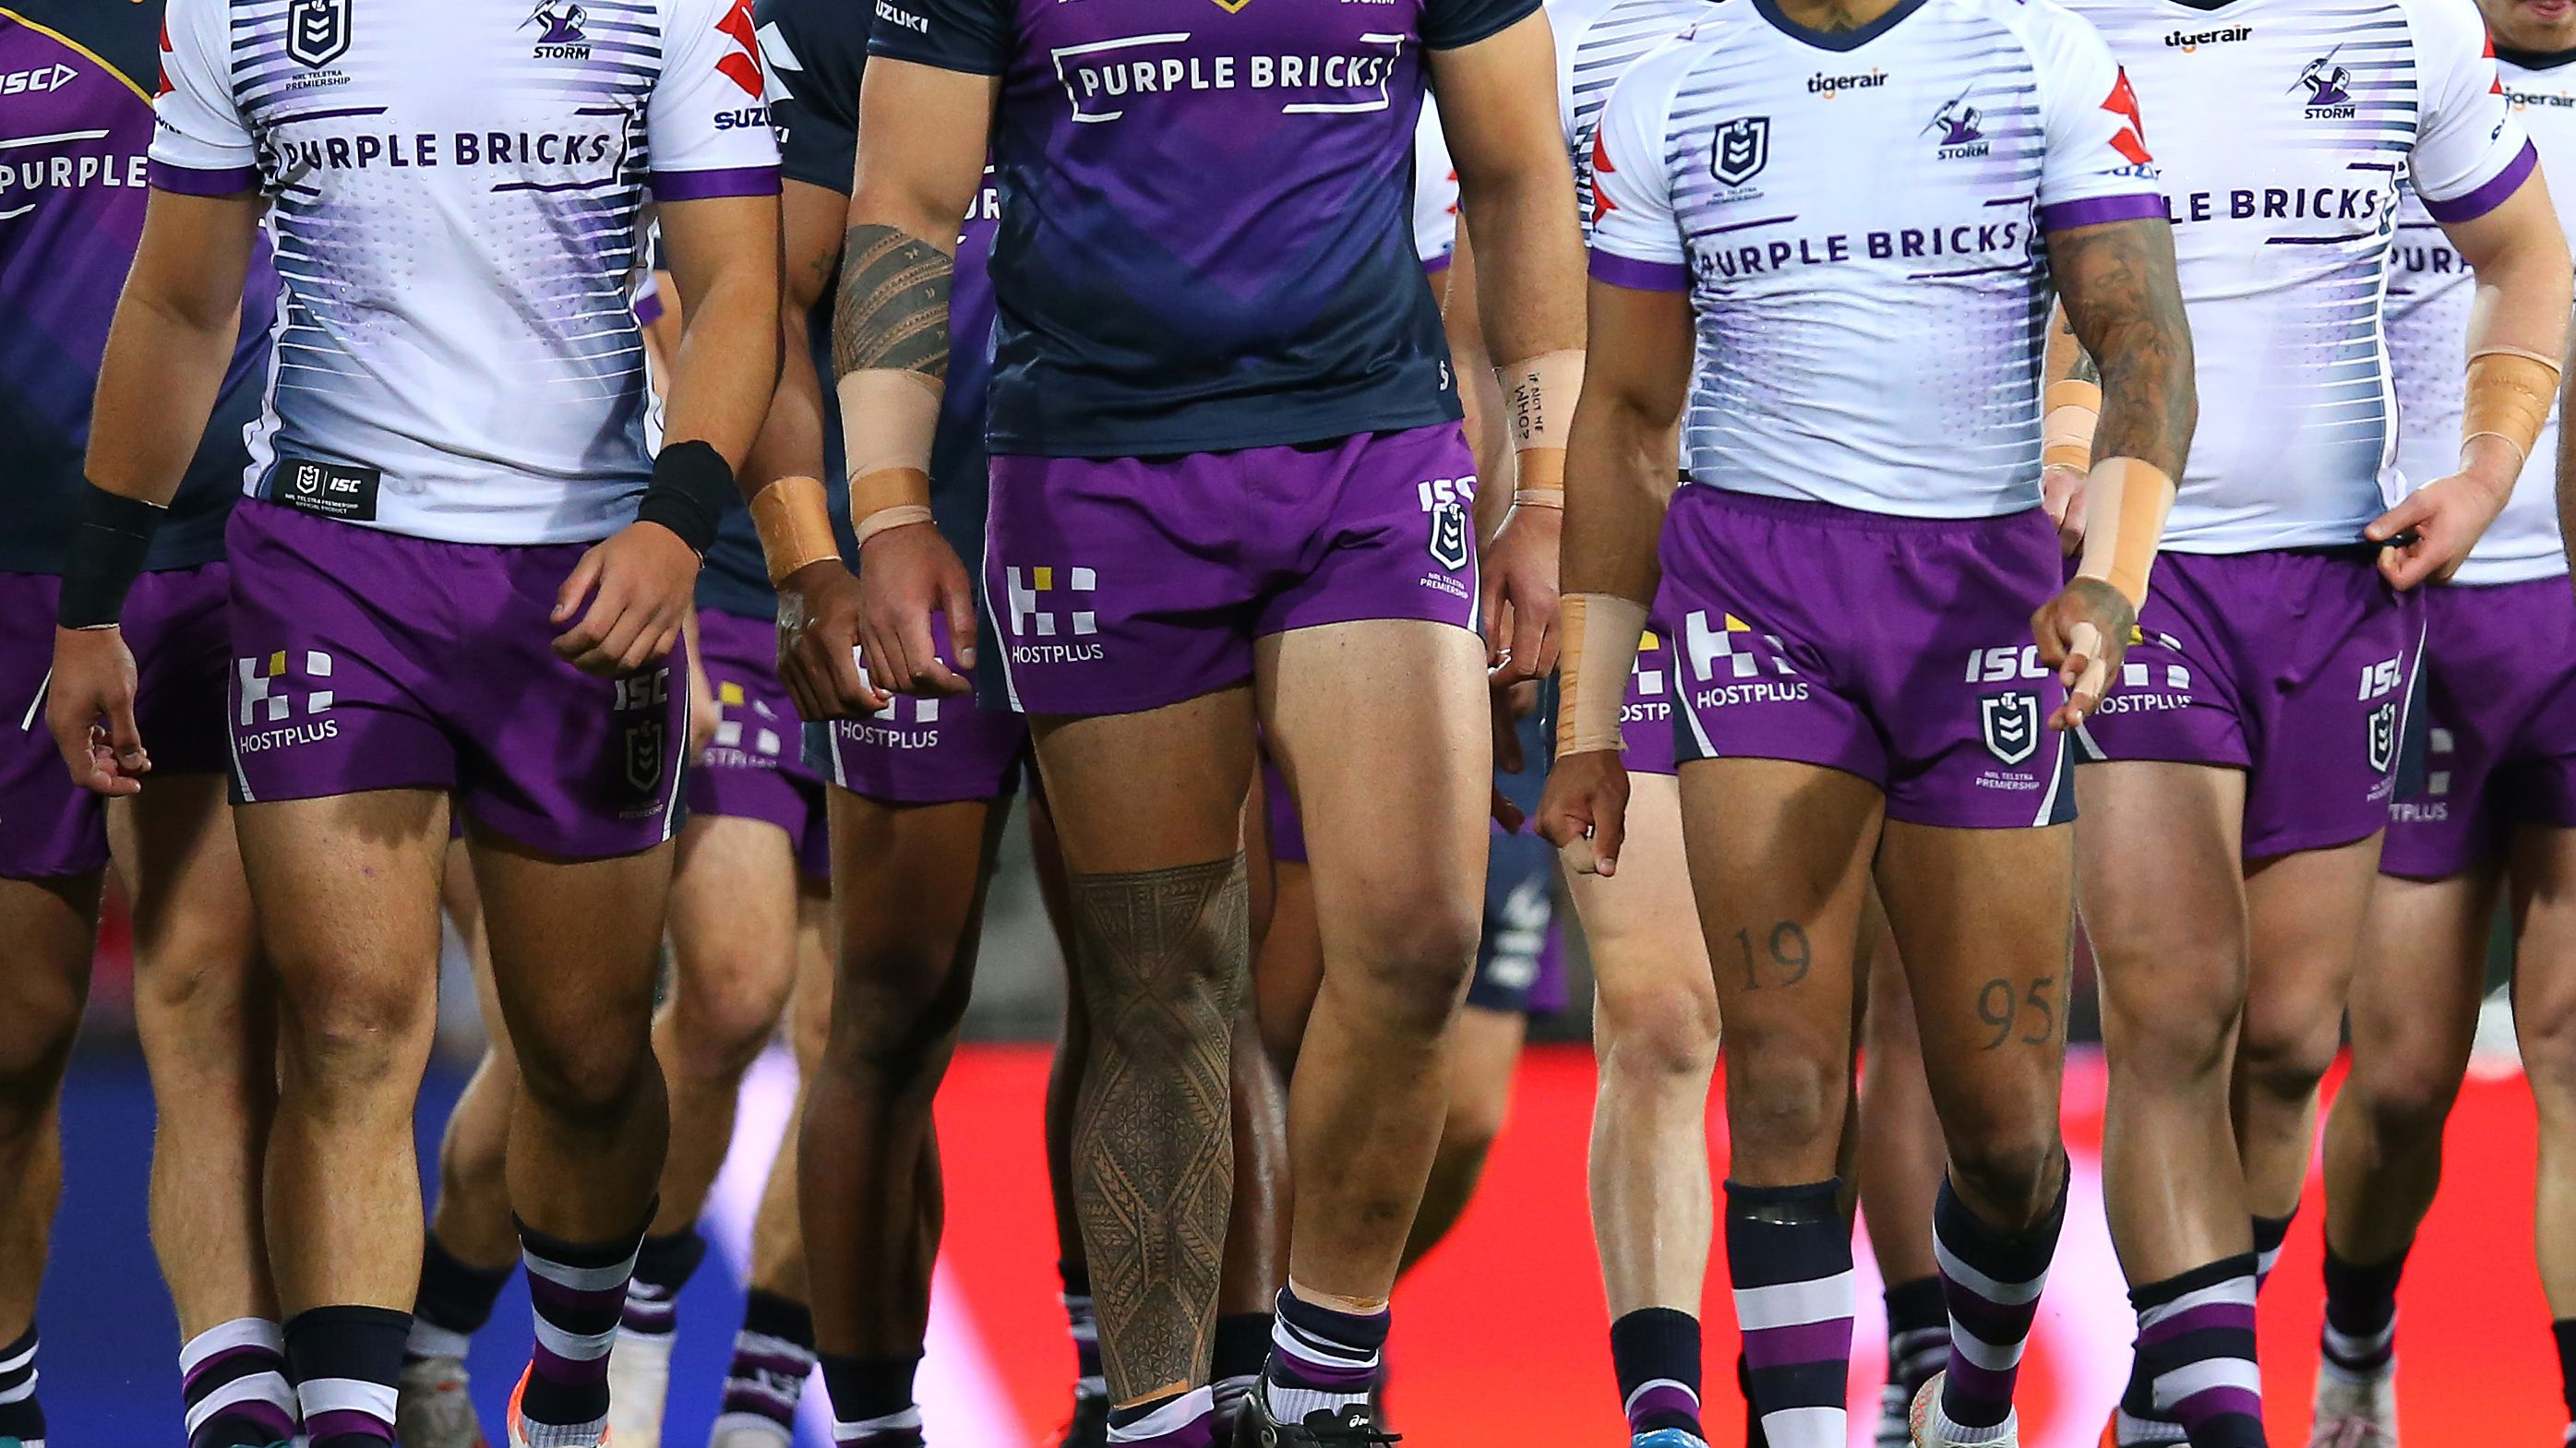 Melbourne Storm confirm player in hospital with cuts after incident